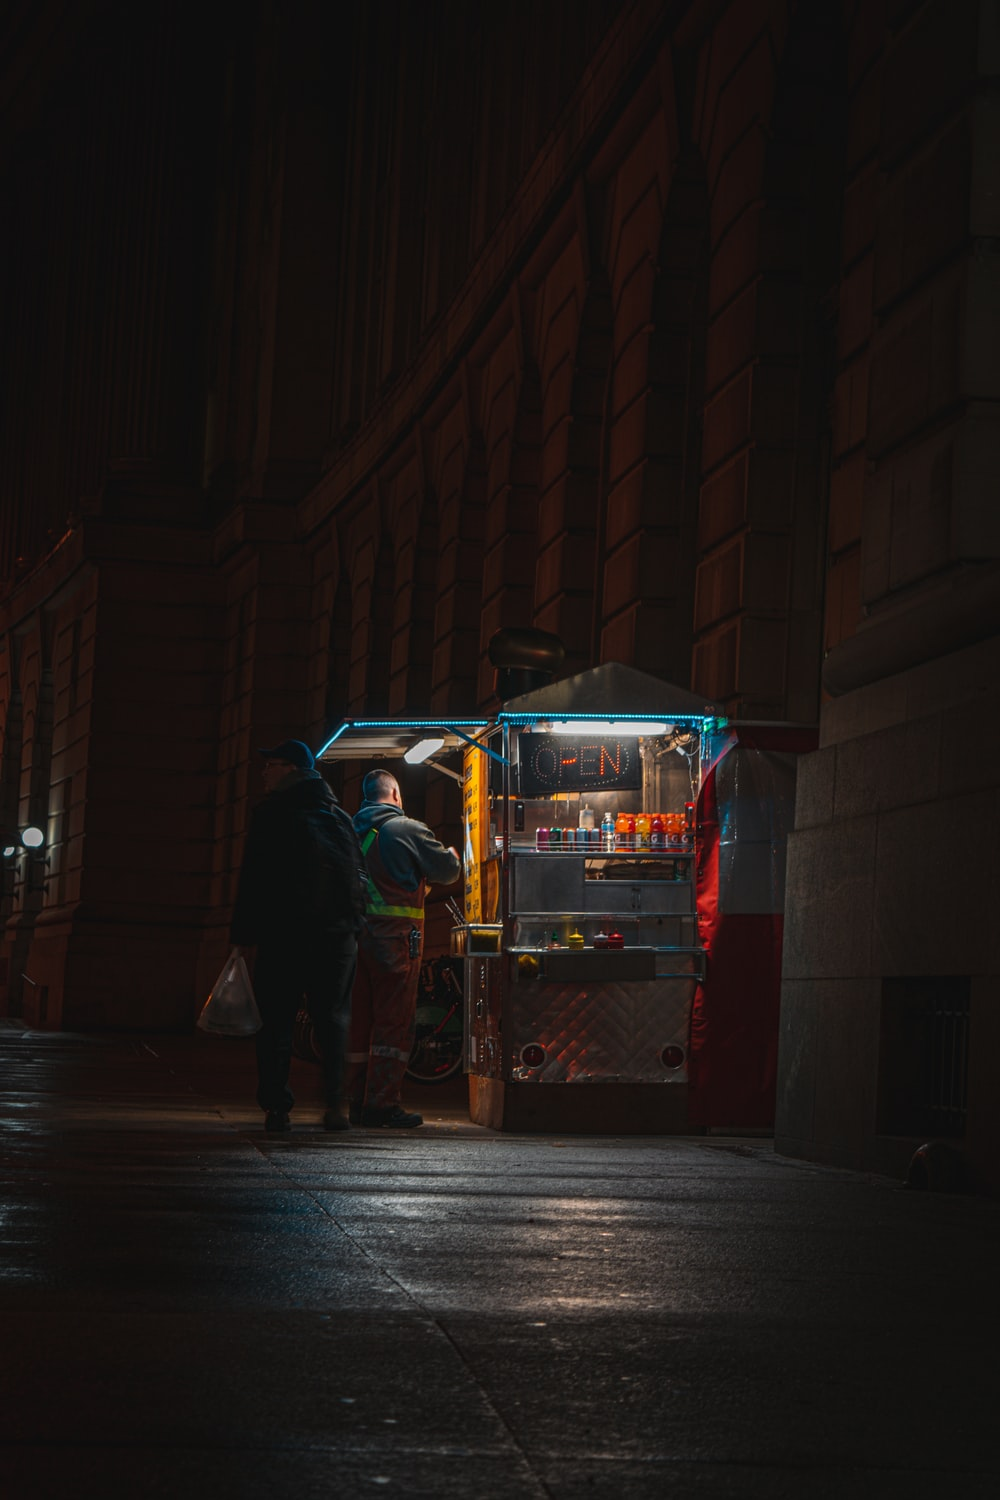 man in black jacket and black pants standing beside red and white food cart